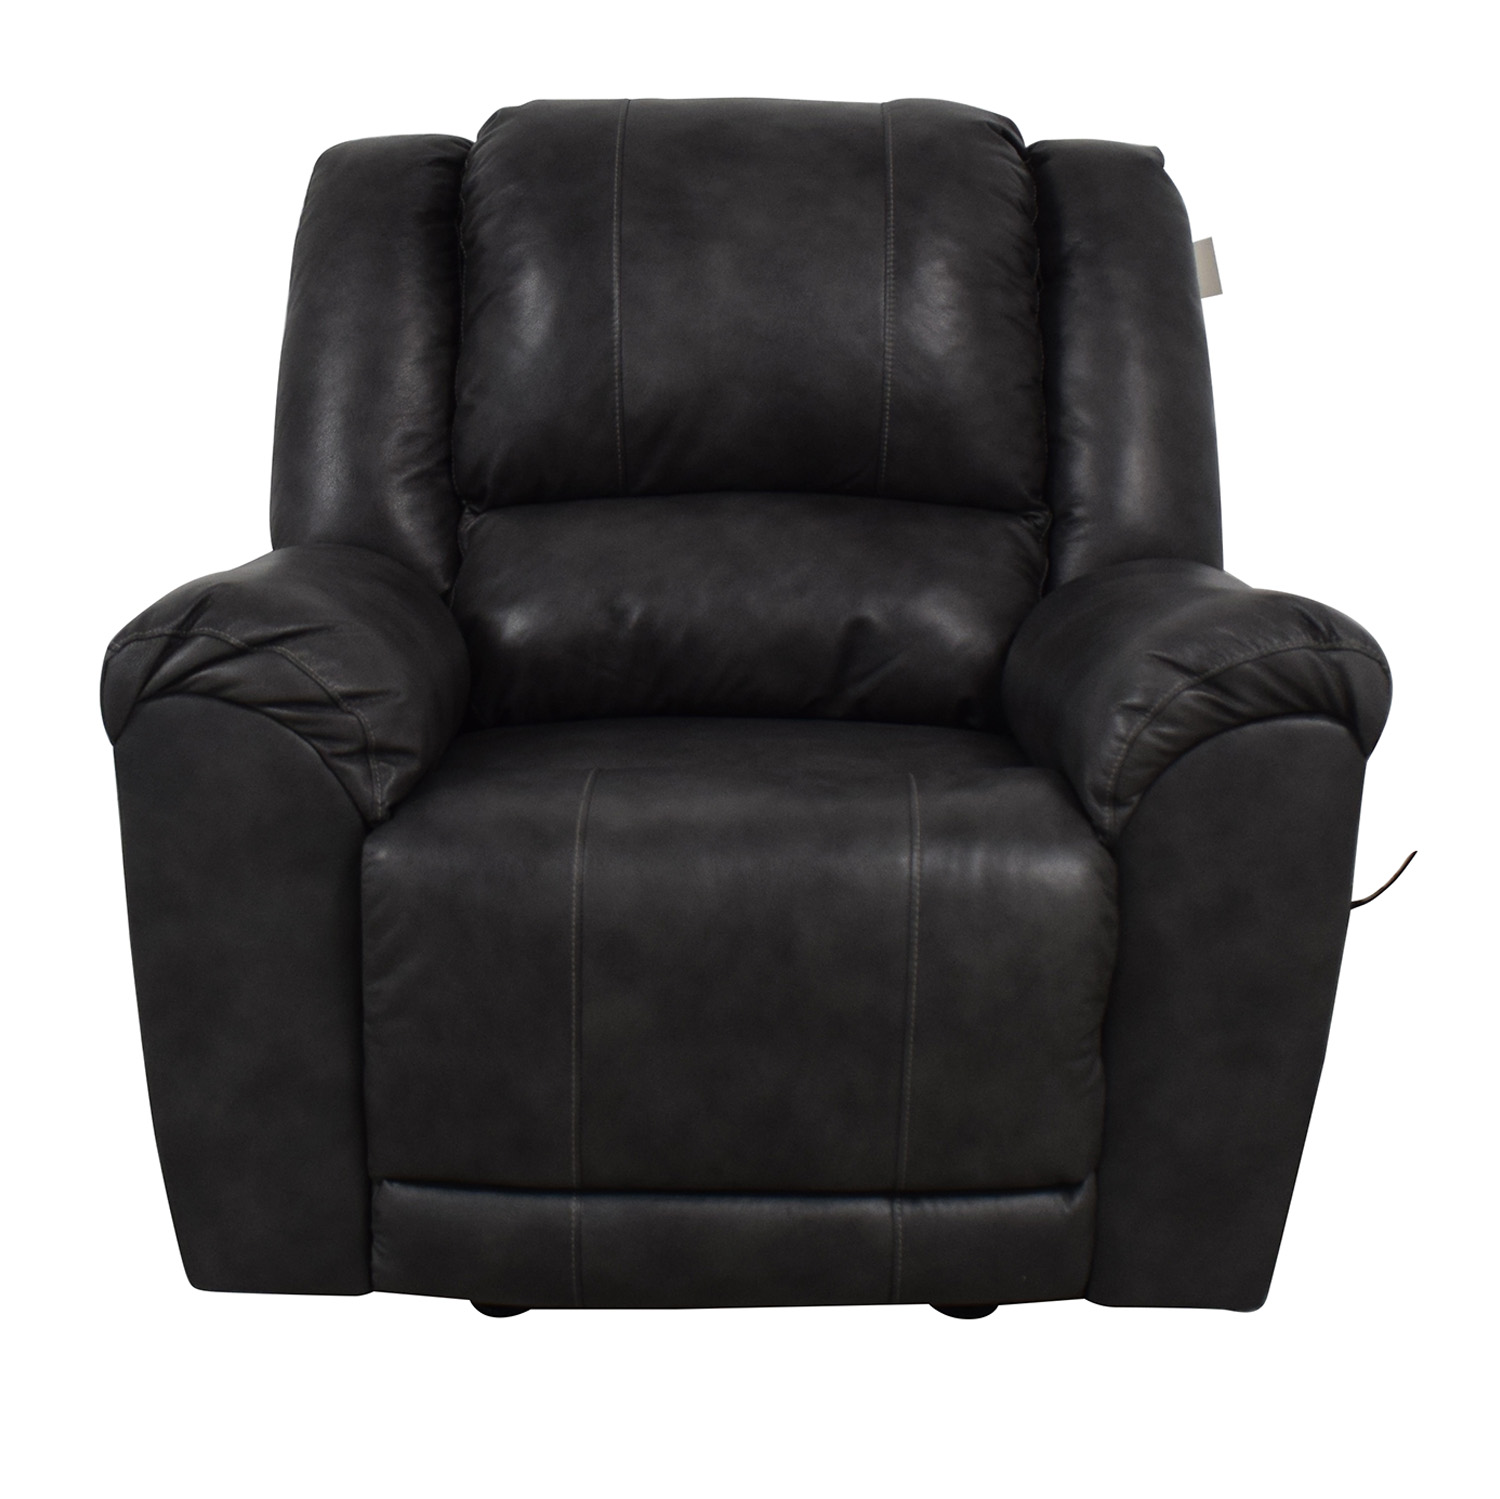 Ashley Furniture Recliner Chairs 79 Off Ashley Furniture Ashley Furniture Persiphone Power Recliner Chairs